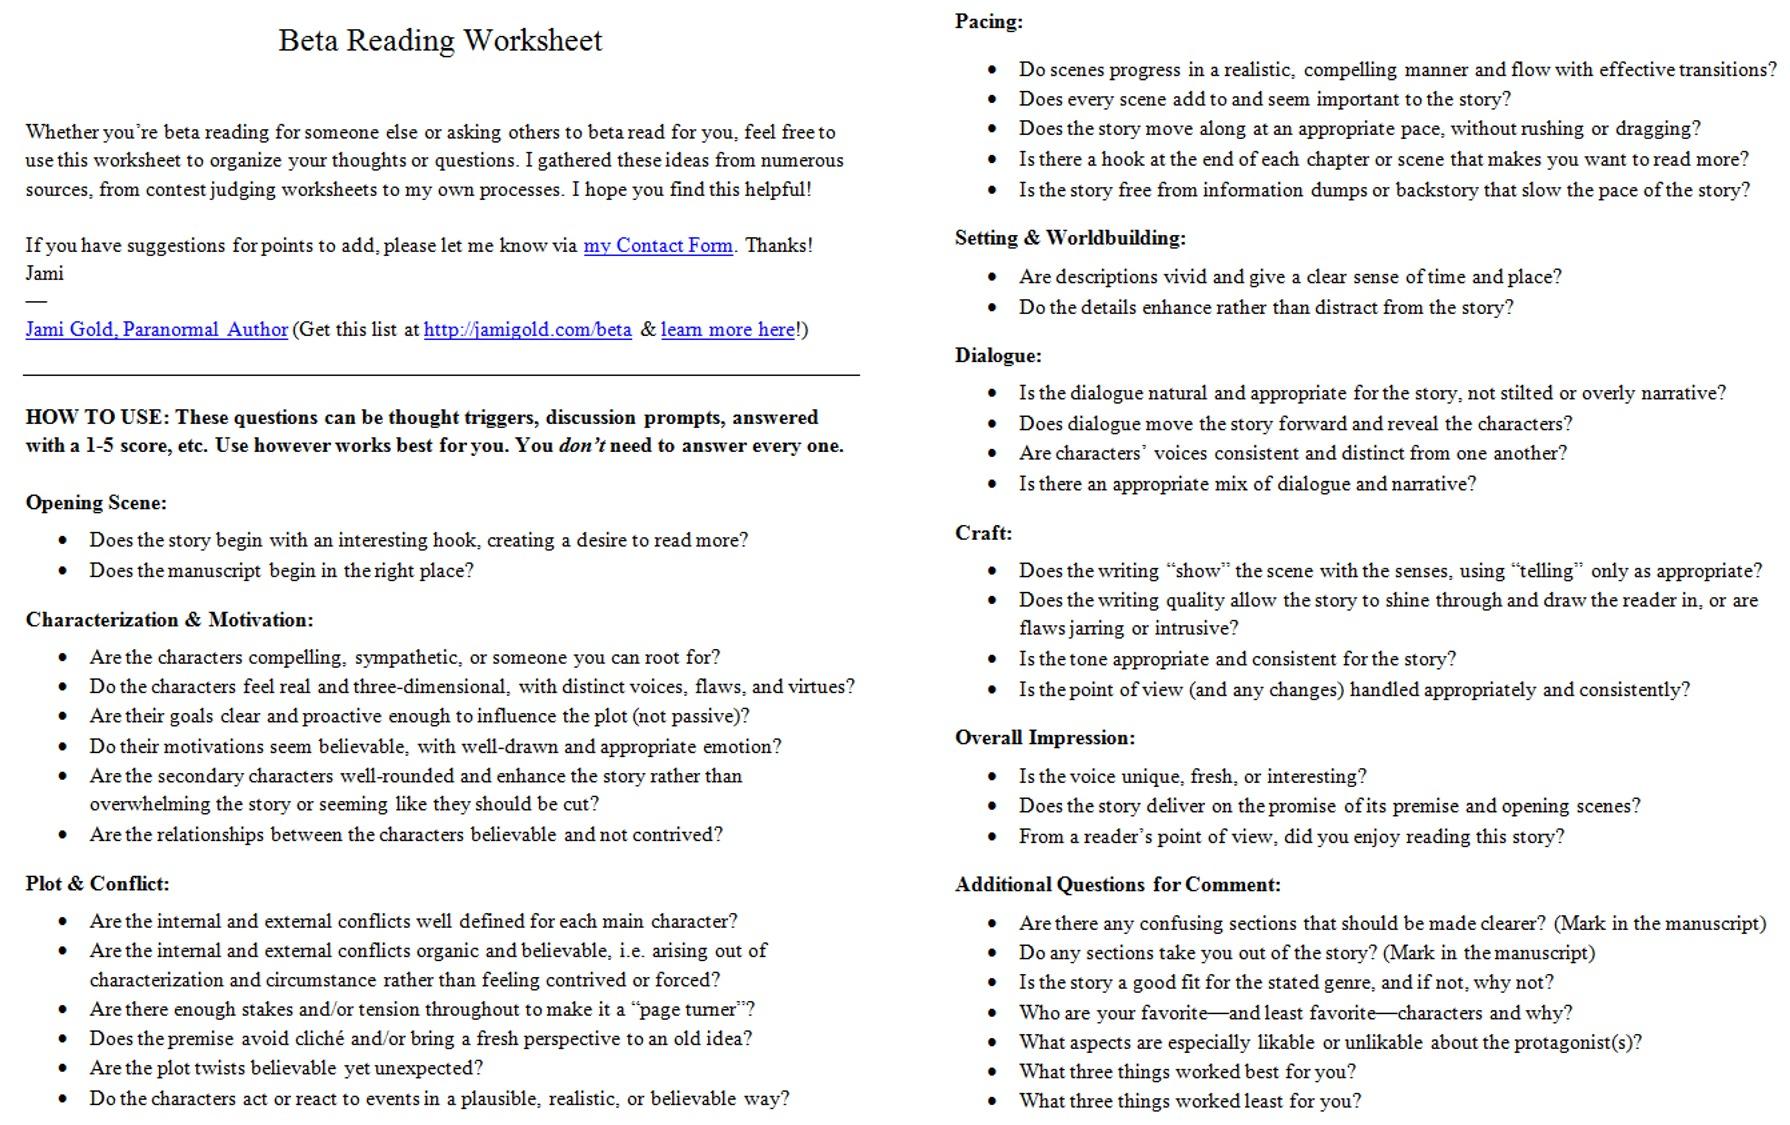 Weirdmailus  Scenic Worksheets For Writers  Jami Gold Paranormal Author With Inspiring Screen Shot Of The Twopage Beta Reading Worksheet With Easy On The Eye Actions Worksheet Also Free English Language Worksheets In Addition Using Adjectives In Writing Worksheet And Word Problem Solving Worksheets As Well As Business English Worksheet Additionally Worksheets For Class  English From Jamigoldcom With Weirdmailus  Inspiring Worksheets For Writers  Jami Gold Paranormal Author With Easy On The Eye Screen Shot Of The Twopage Beta Reading Worksheet And Scenic Actions Worksheet Also Free English Language Worksheets In Addition Using Adjectives In Writing Worksheet From Jamigoldcom